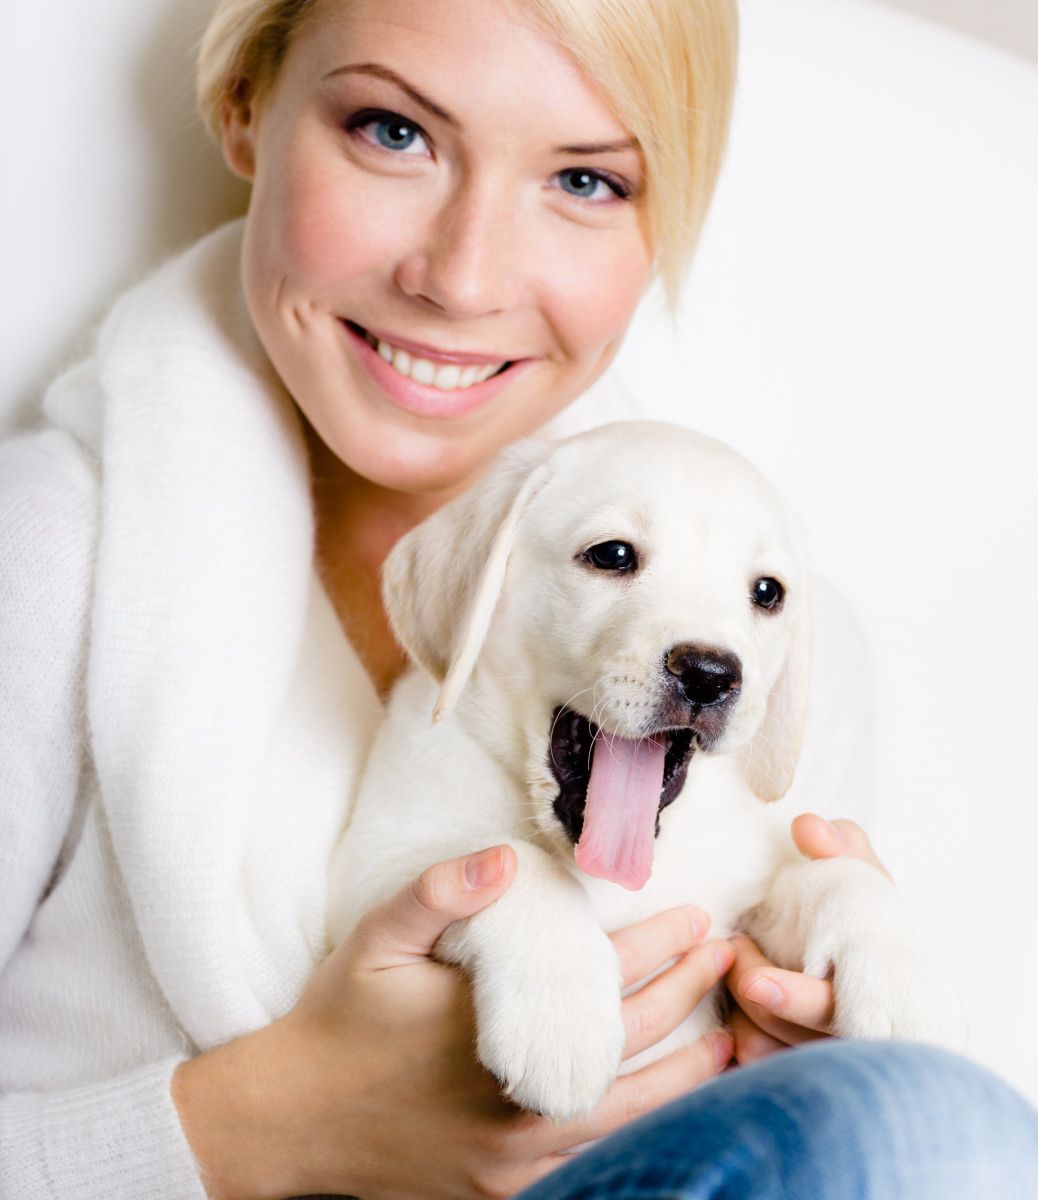 60 White Dog Names: Male, Female, Cute & Funny